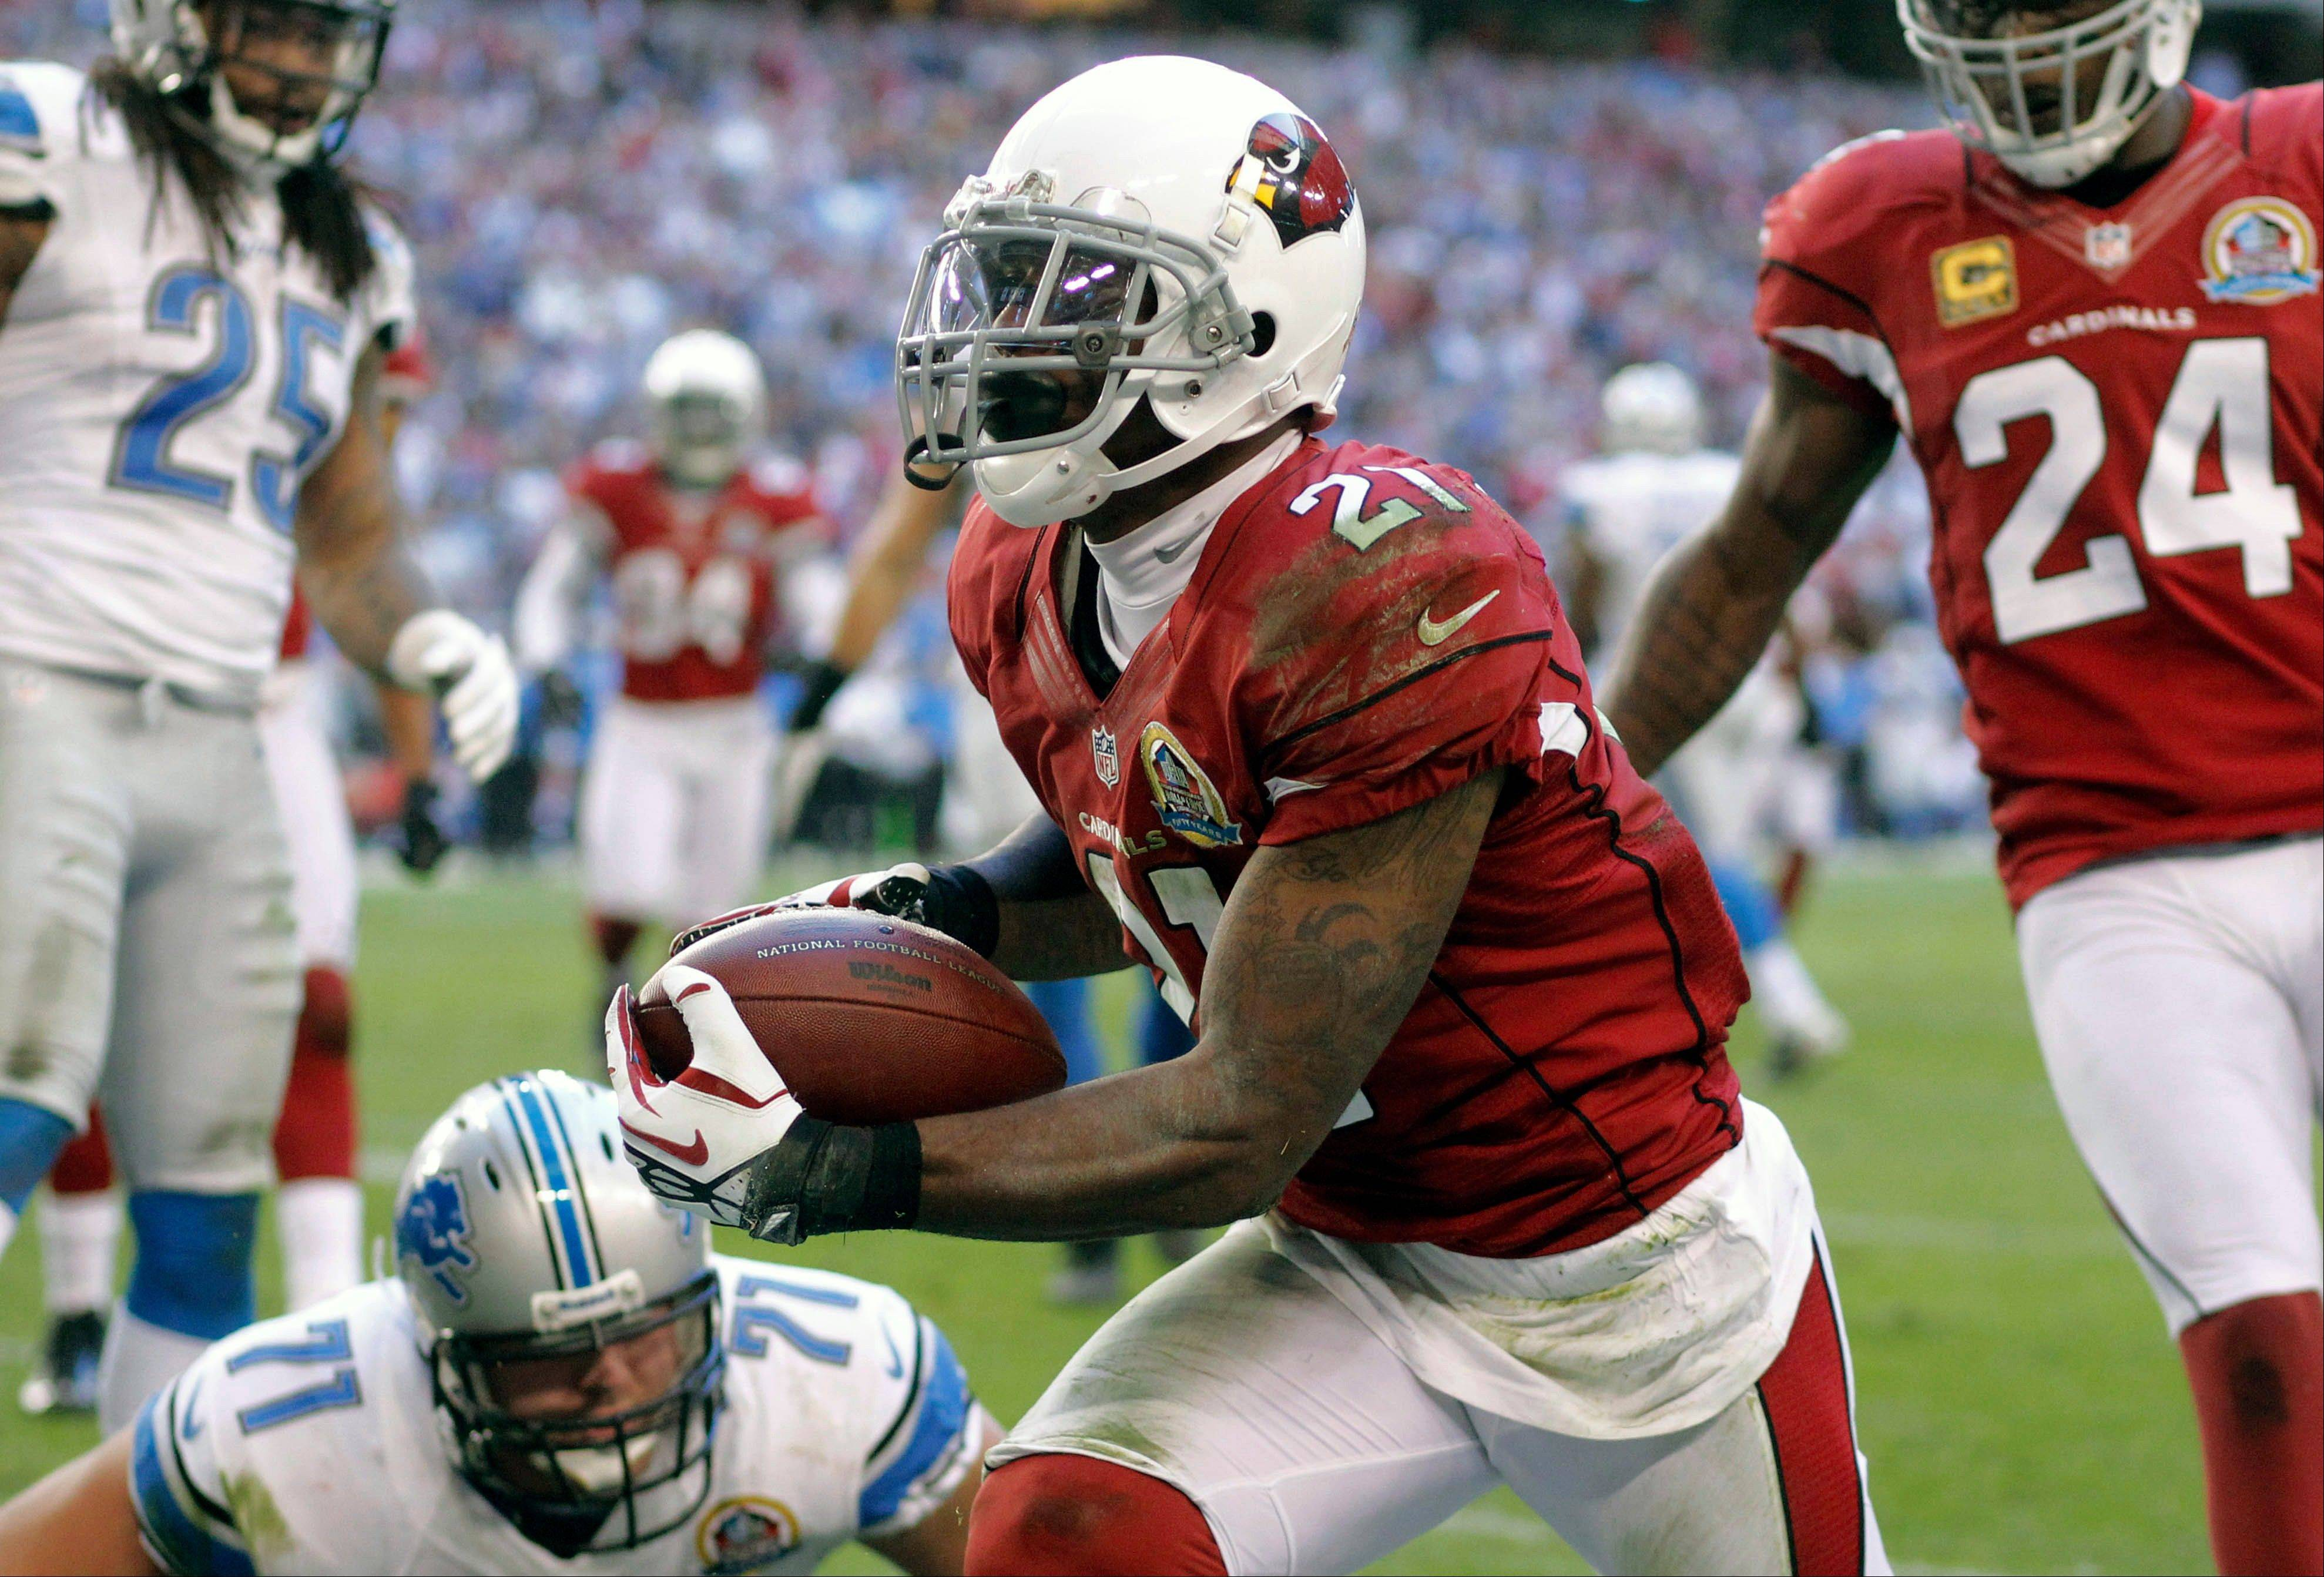 Patrick Peterson returned 4 punts for touchdowns last season, tying the league mark set previously by Devin Hester and Detroit's Jack Christansen.